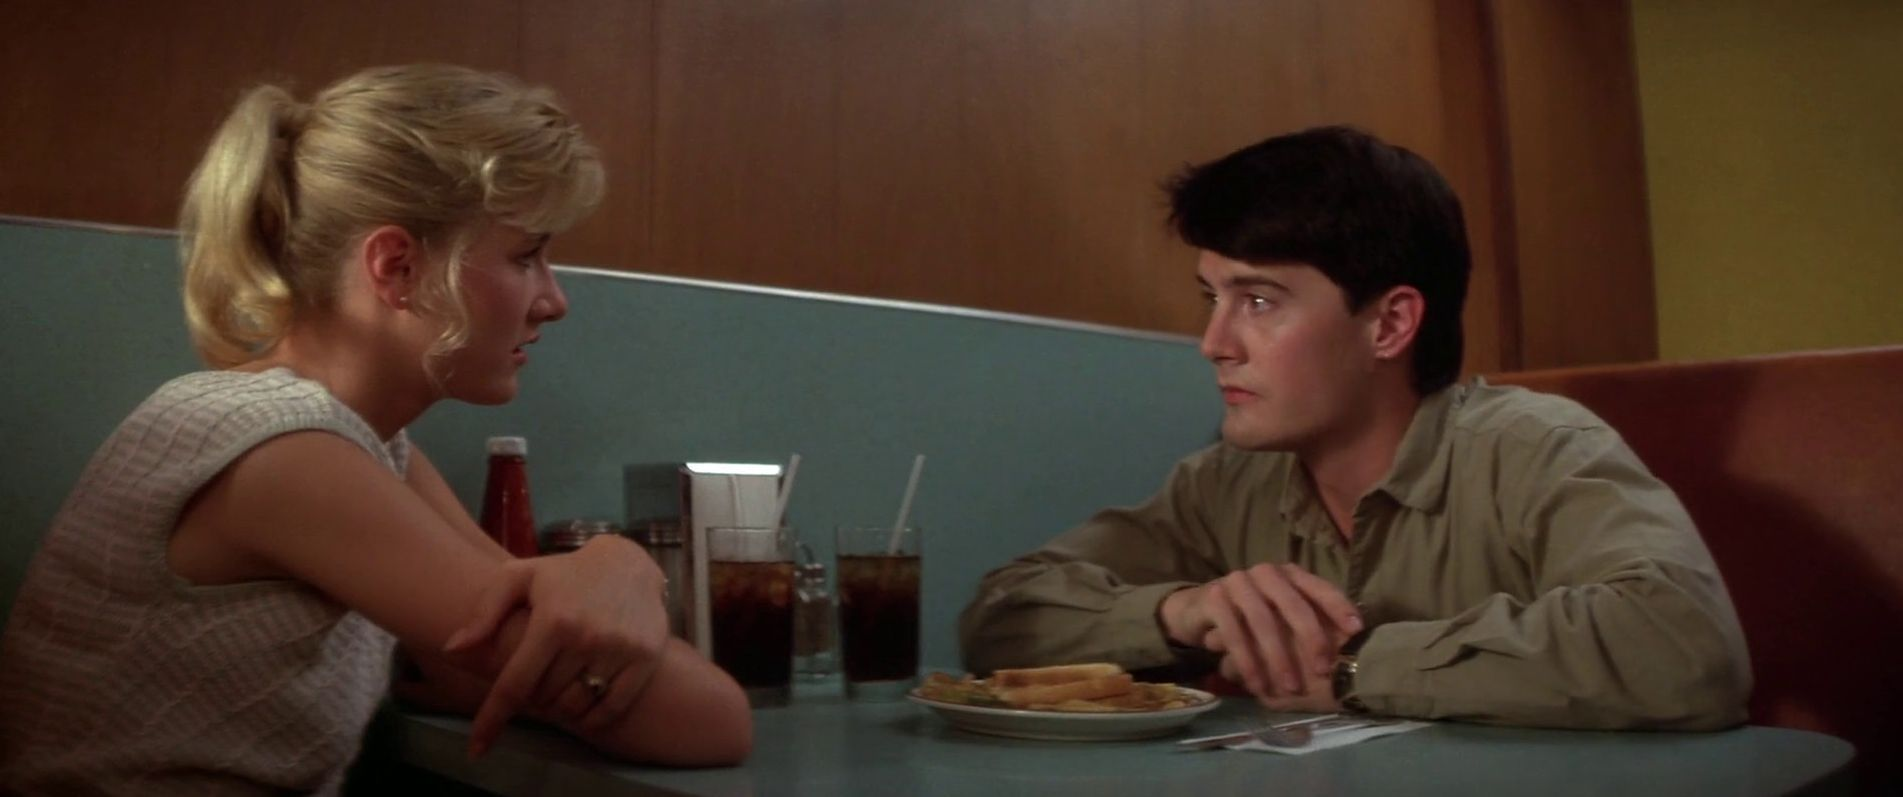 Kyle MacLachlan and Laura Dern, one of the great cinematic p